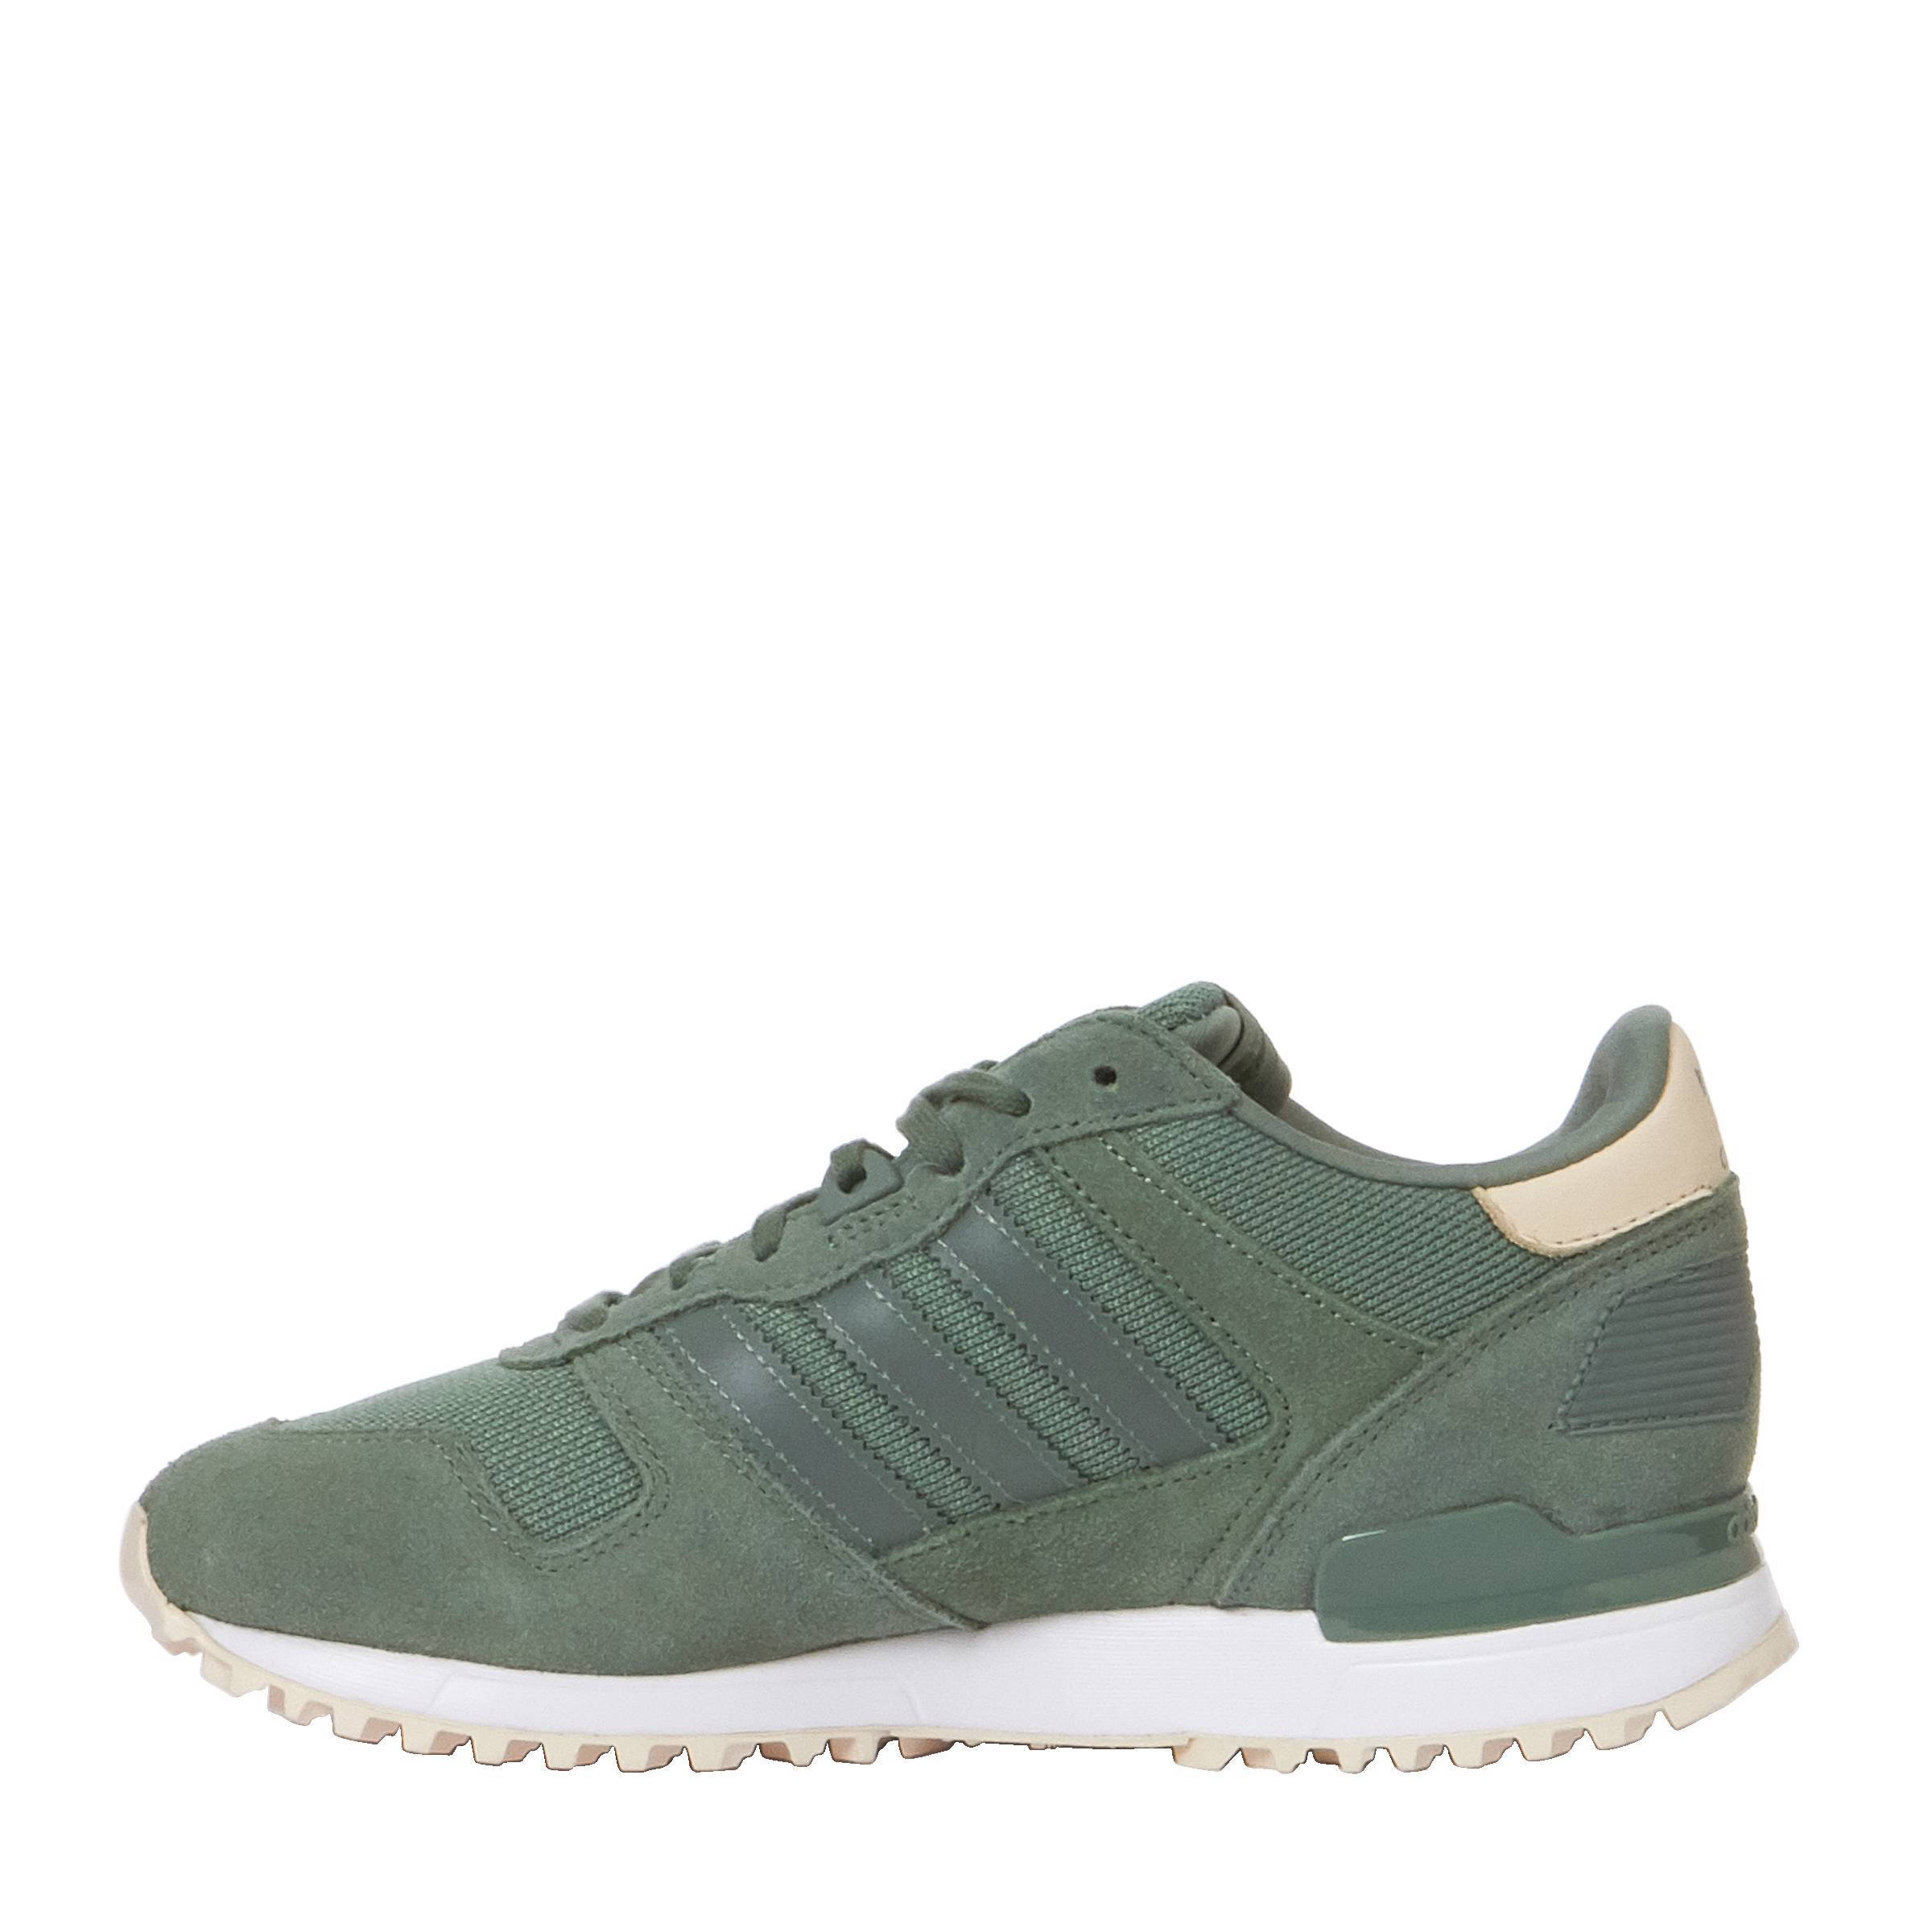 bf6d2871c17 ... low price adidas originals zx 700 sneakers wehkamp 4592b eef23